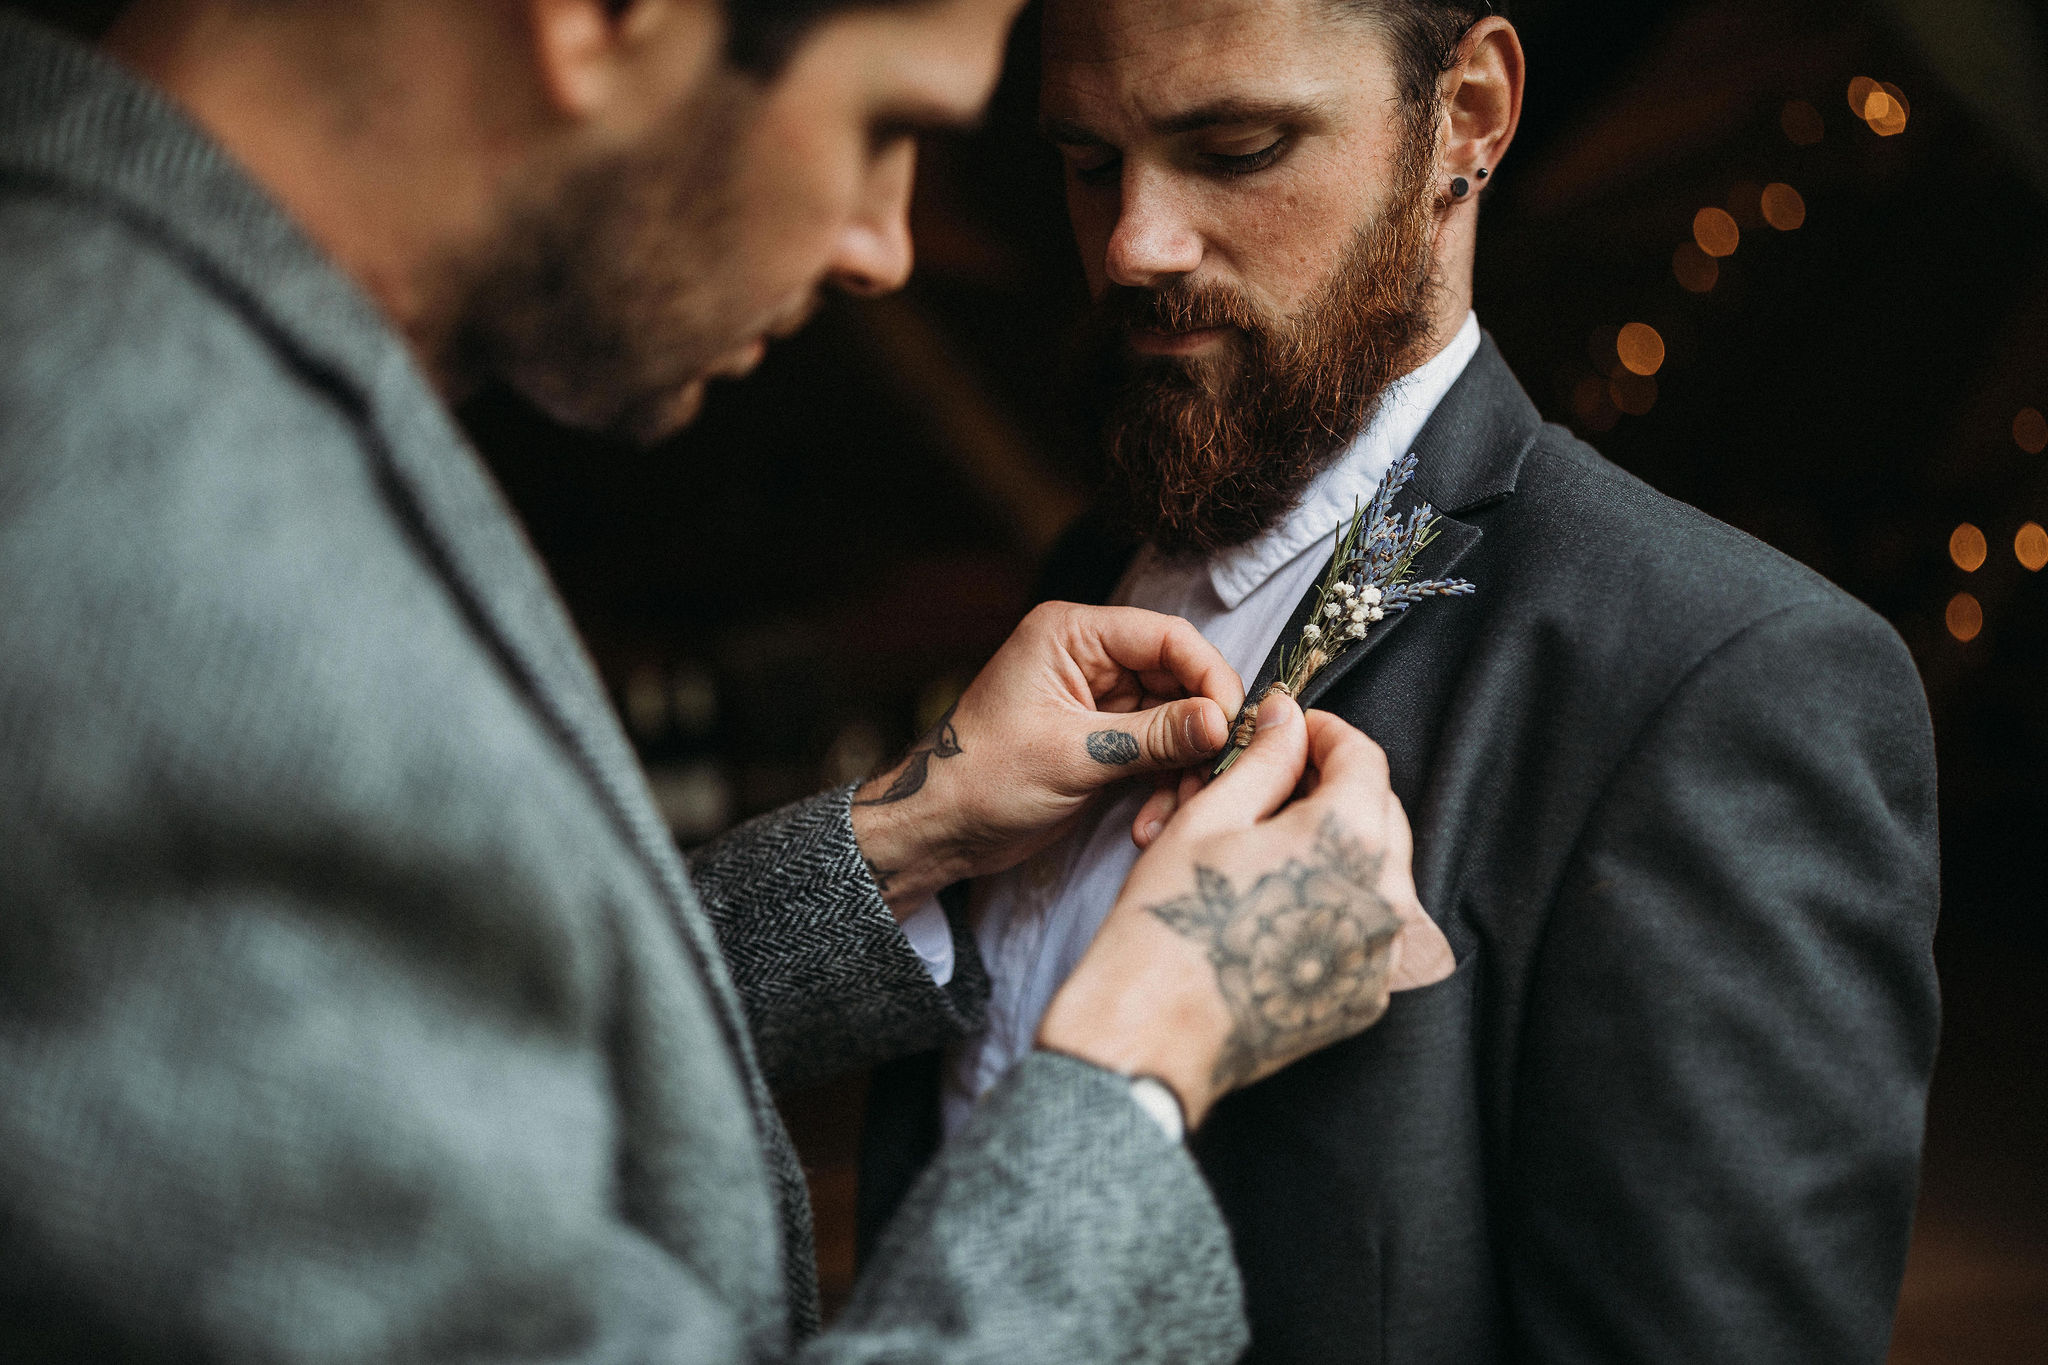 Groom doing buttonhole